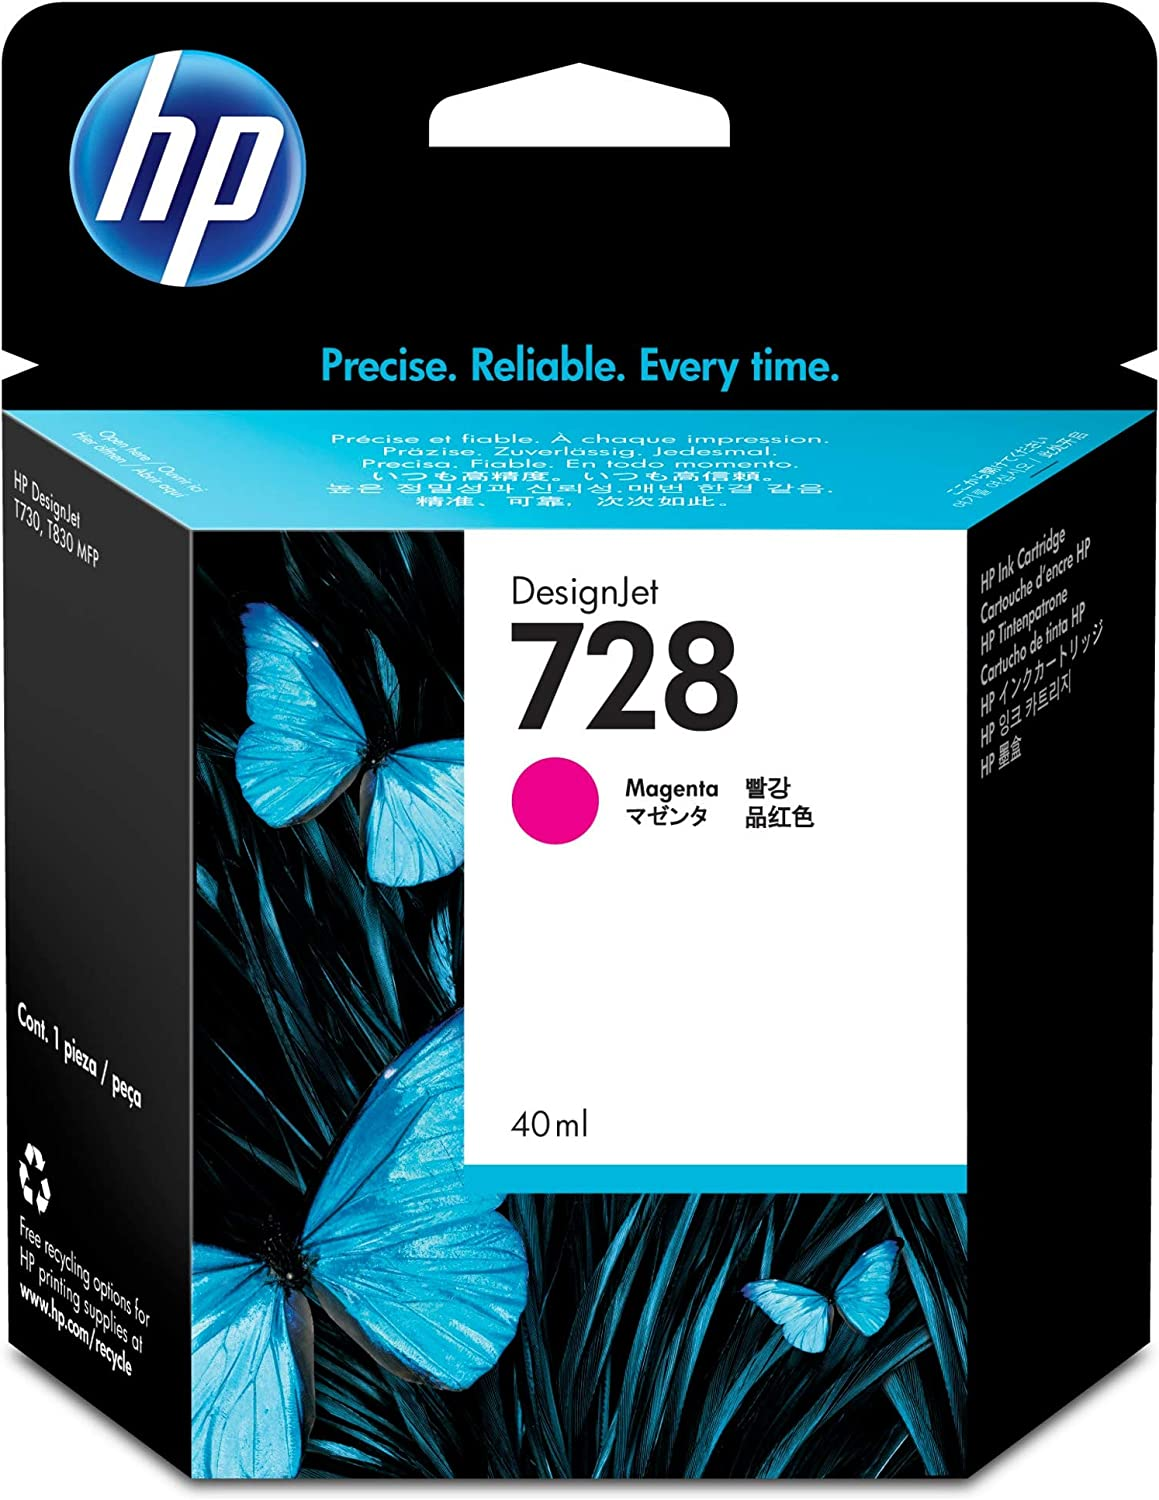 HP 728 Magenta 40-ml Genuine Ink Cartridge (F9J62A) for DesignJet T830 MFP & T730 Large Format Plotter Printers